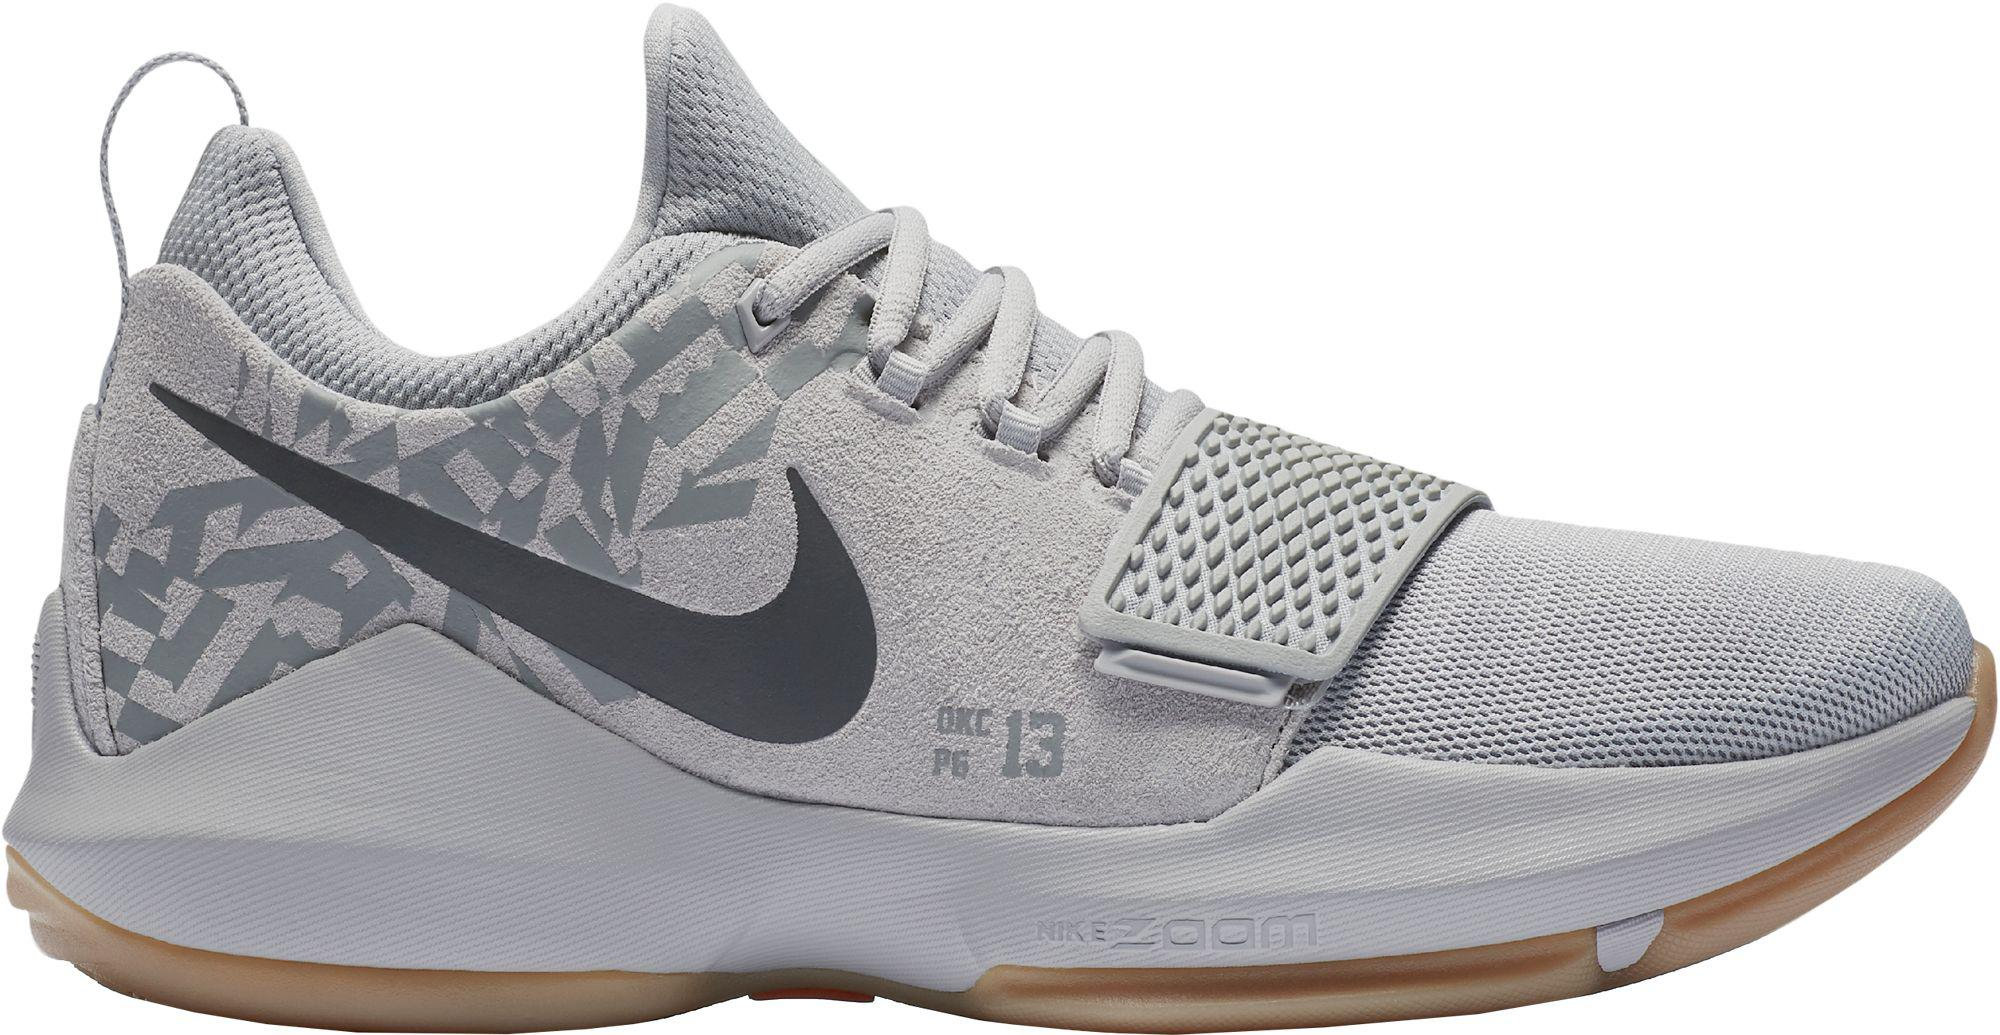 Nike Pg 1 Basketball Shoes In Gray For Men